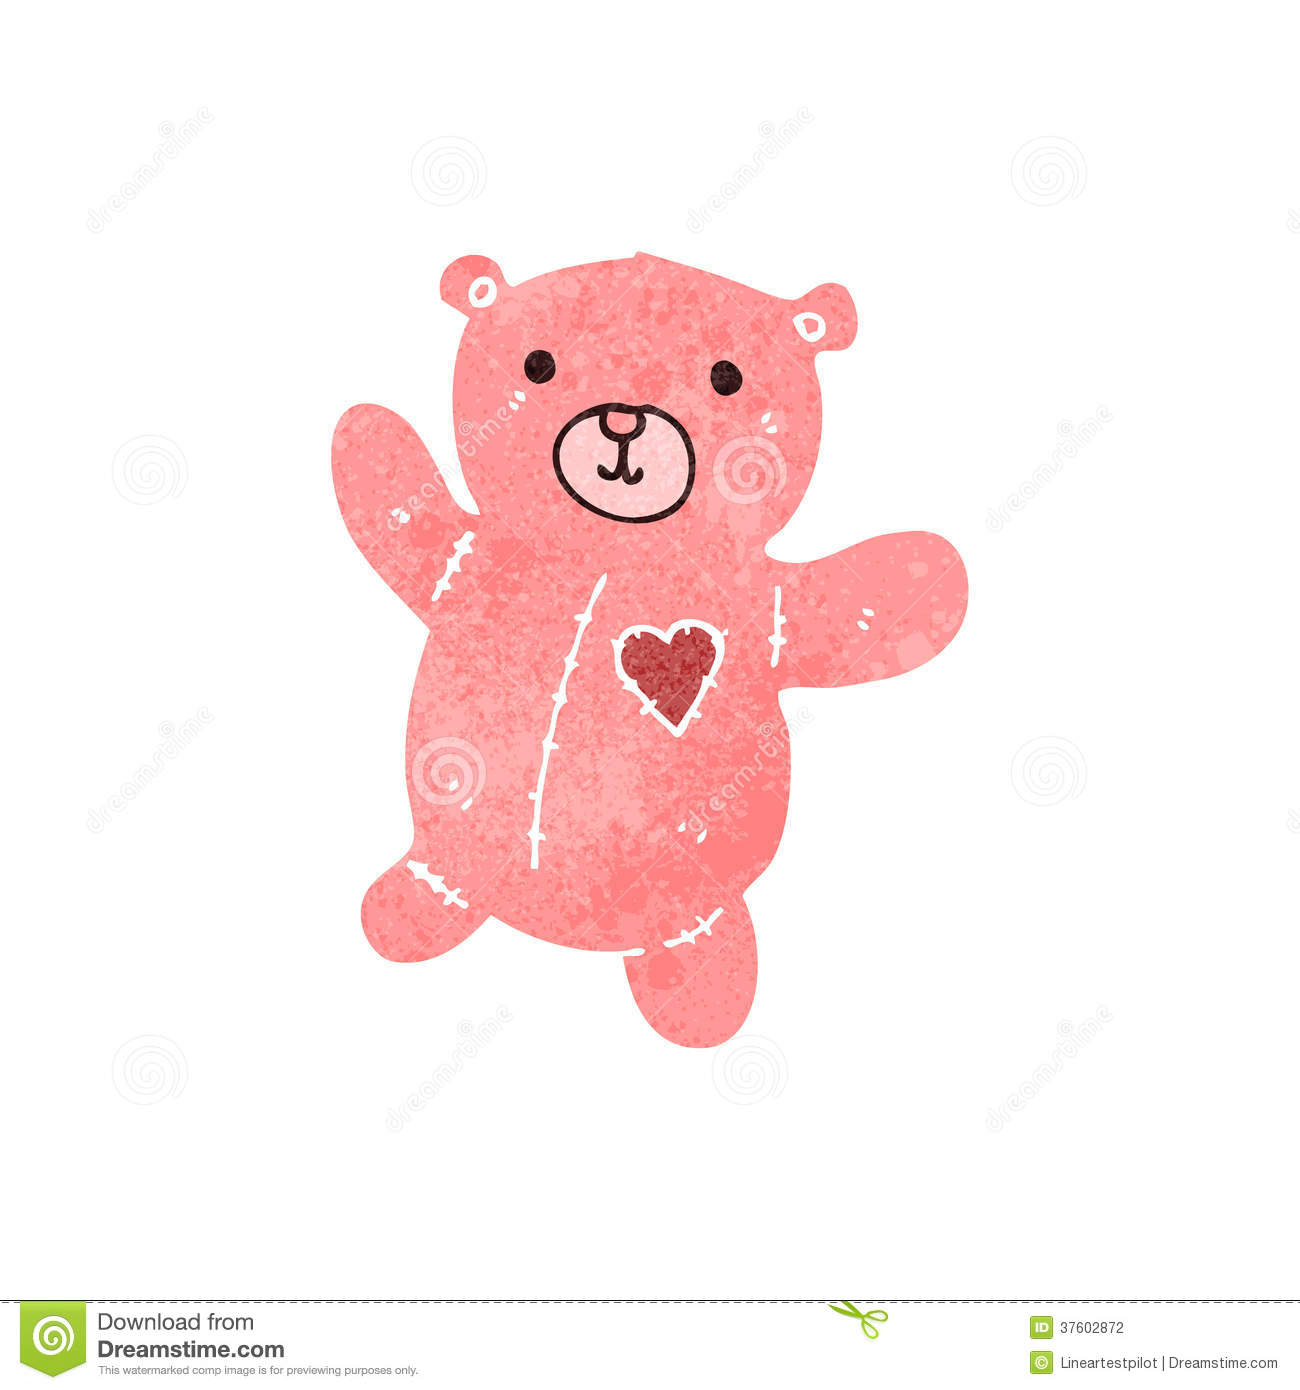 Pink Teddy Bear Stock Photos and Images